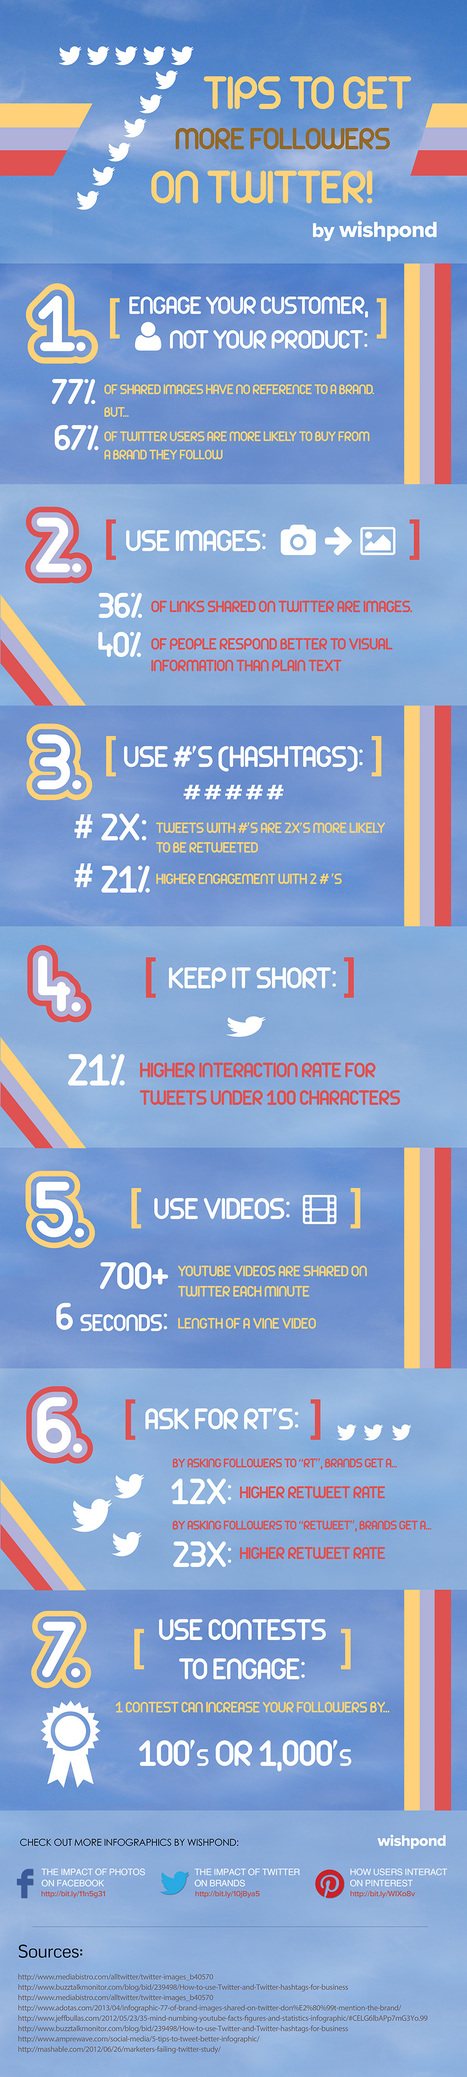 Infographic: 36% of all shared links on Twitter are photos | visualizing social media | Scoop.it